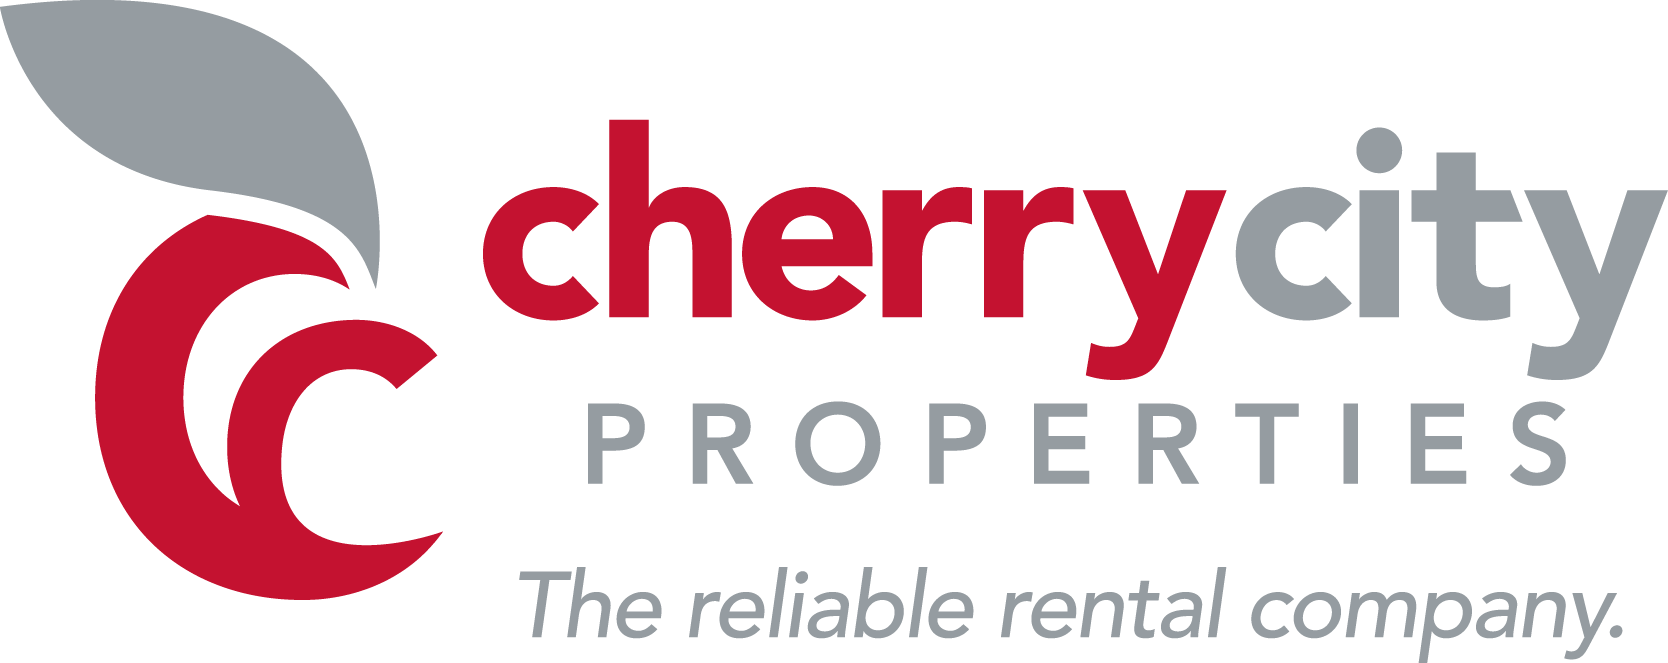 cherry city properties logo